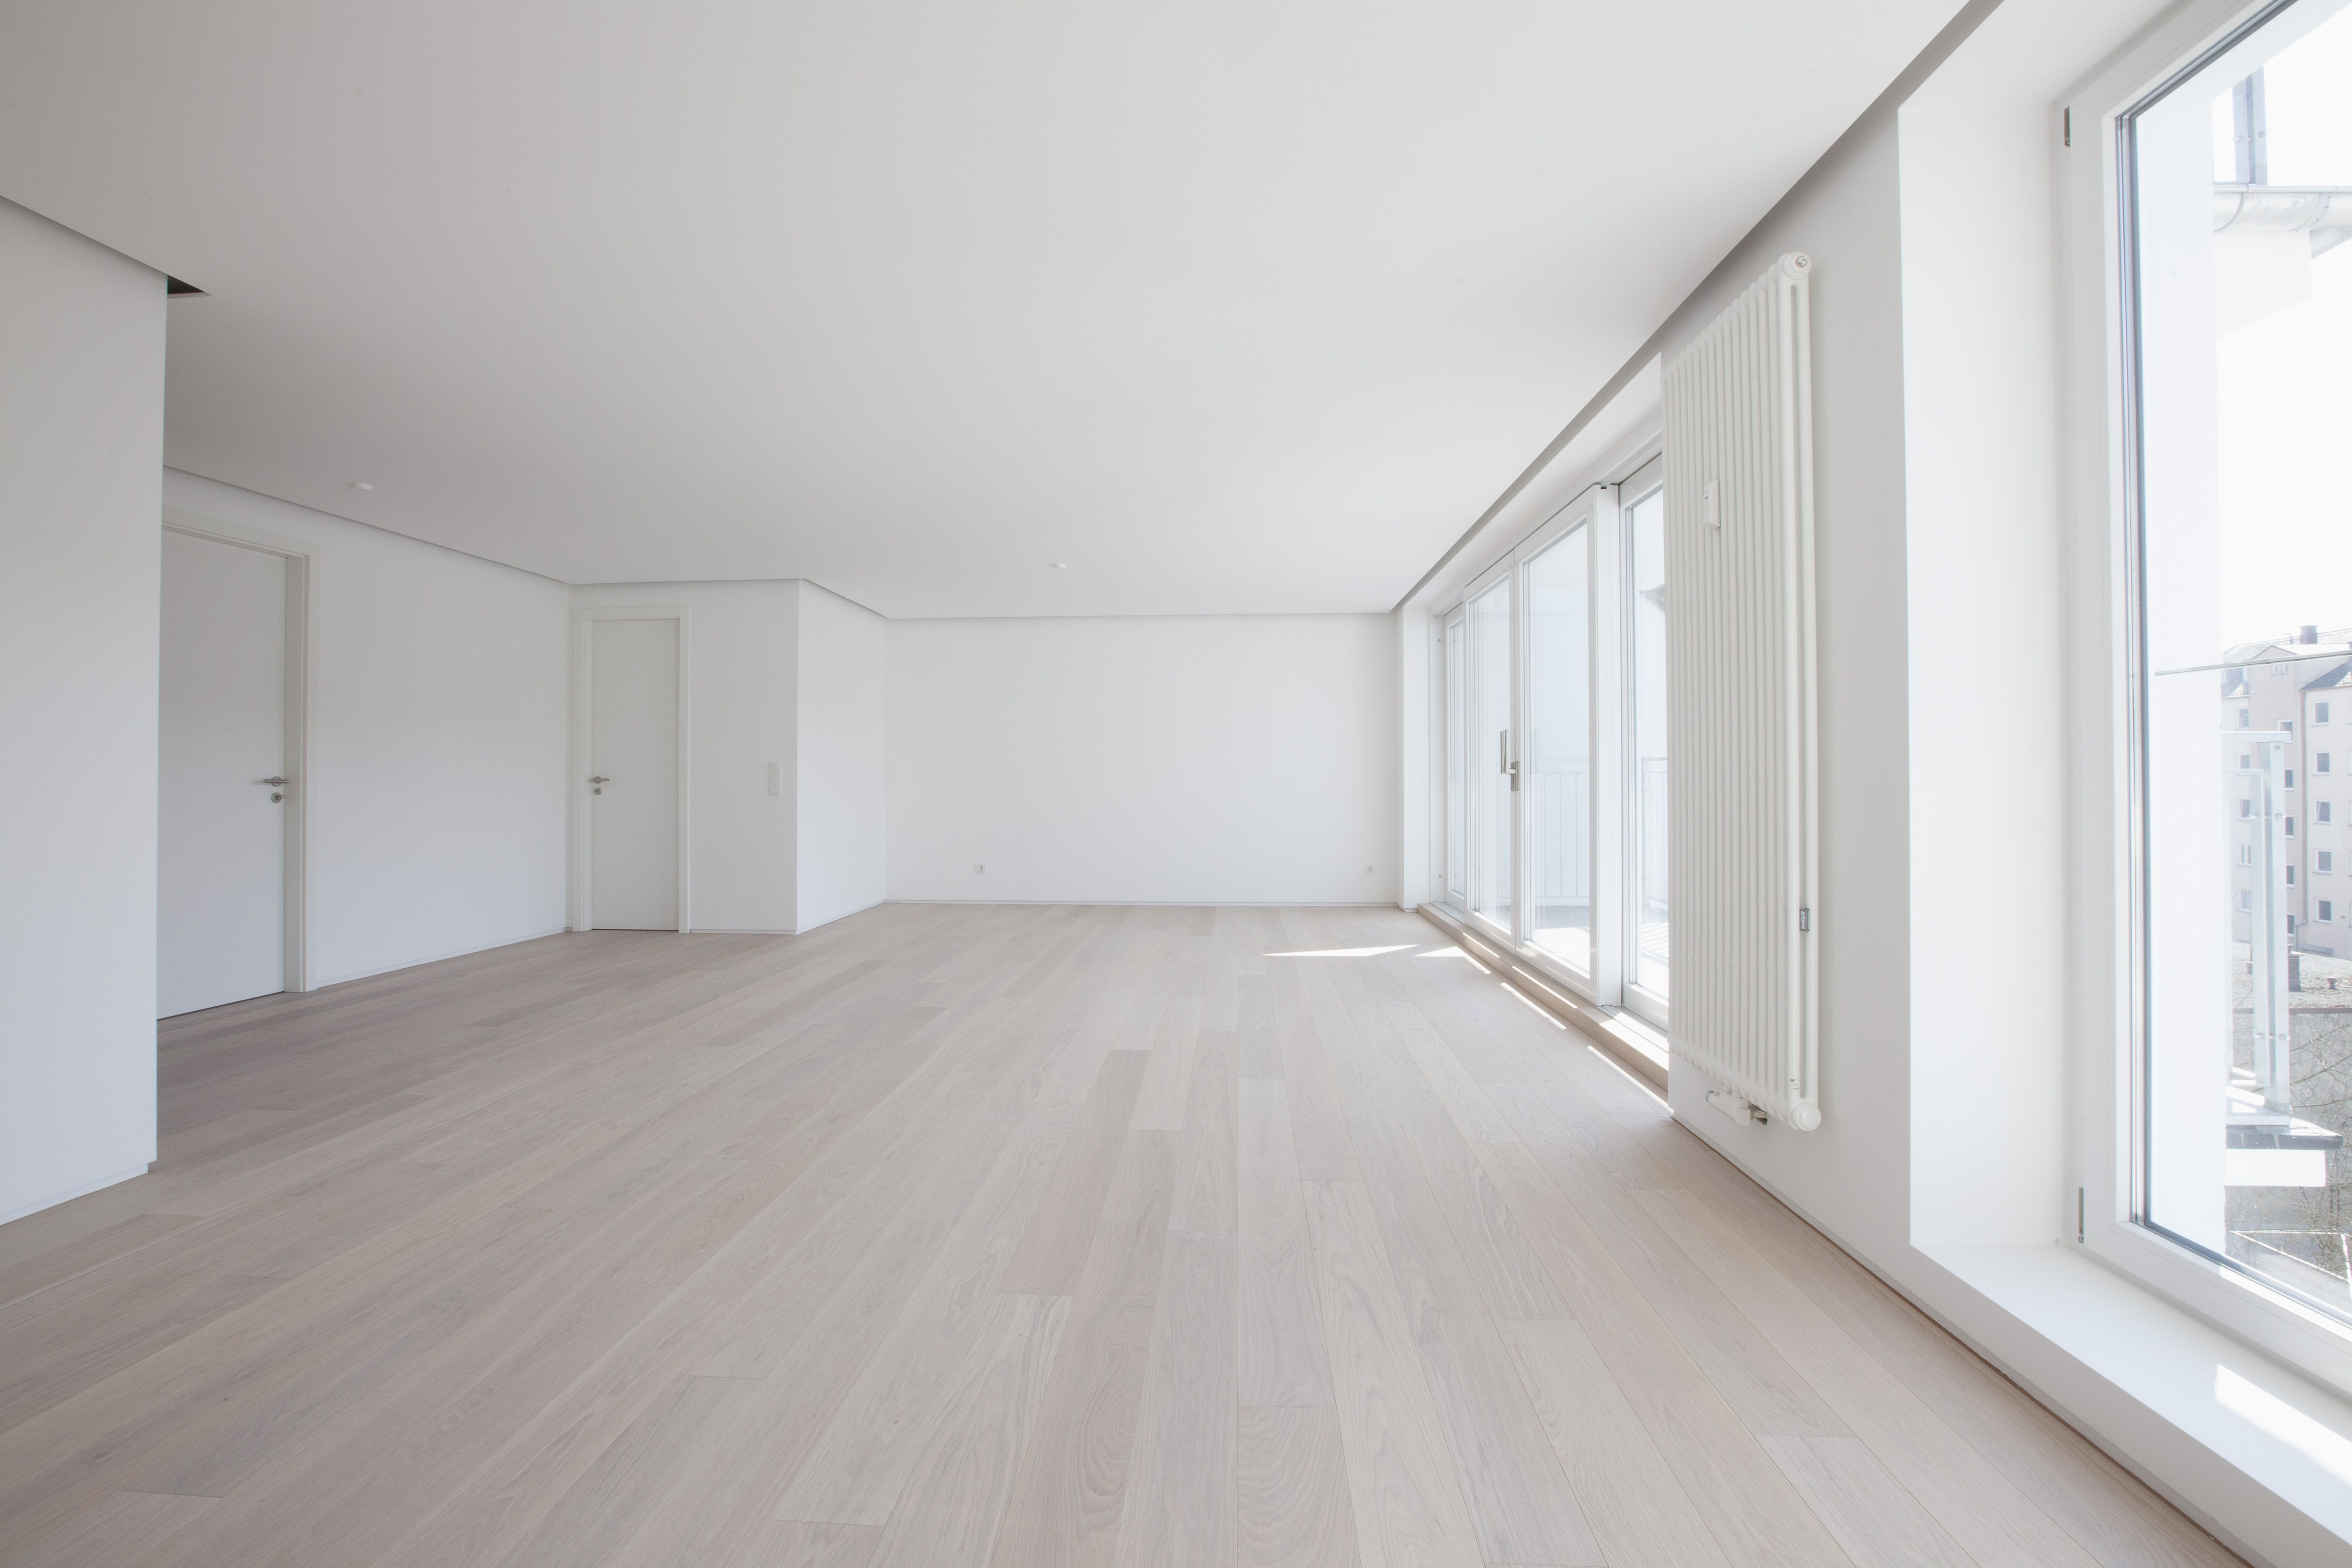 engineered vs solid hardwood flooring of basics of favorite hybrid engineered wood floors intended for empty living room in modern apartment 578189139 58866f903df78c2ccdecab05